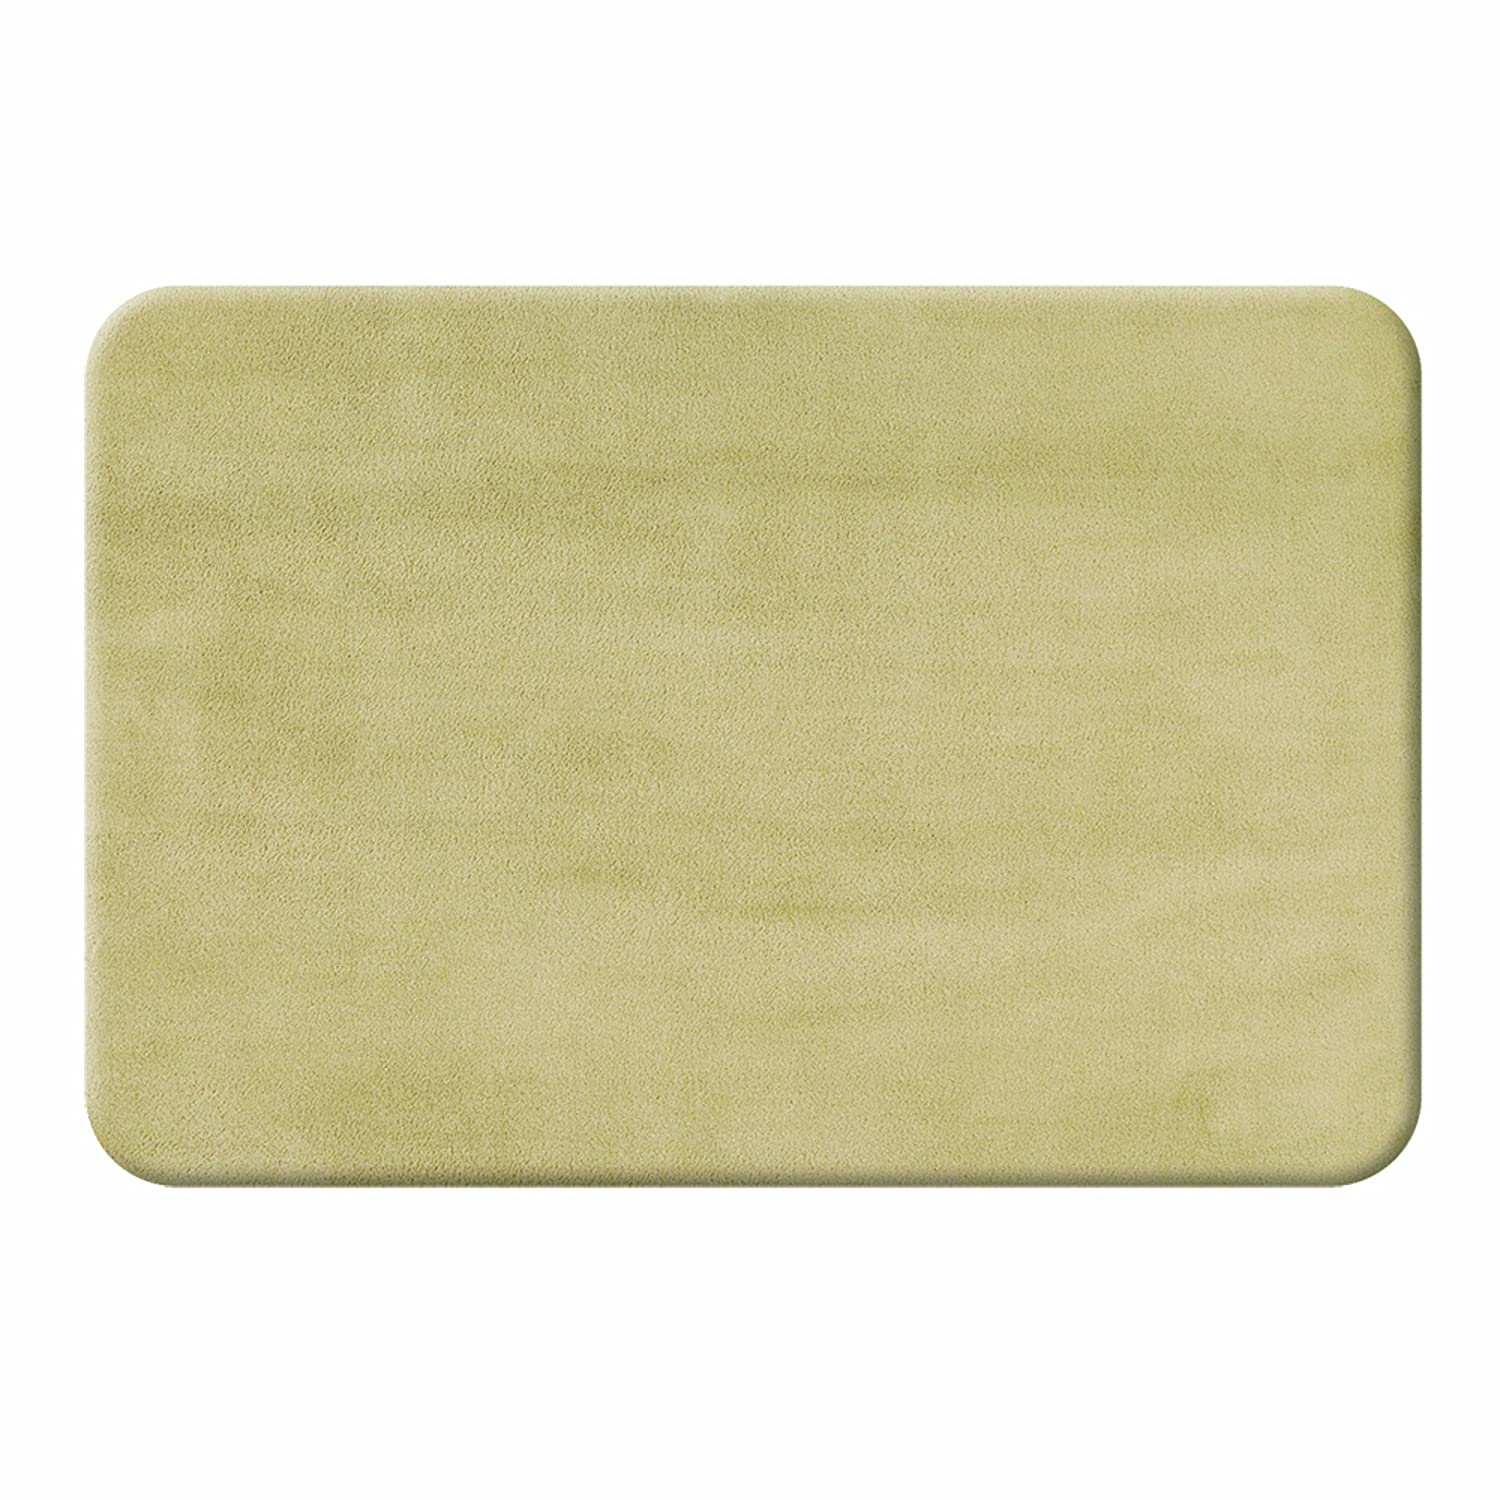 Sleep Innovations Memory Foam Bath Mat, Twin Pack, 20-Inch by 32-Inch, Sandy Shore Taupe, 2-Pack S-BMT-20X32-ST-SST-C